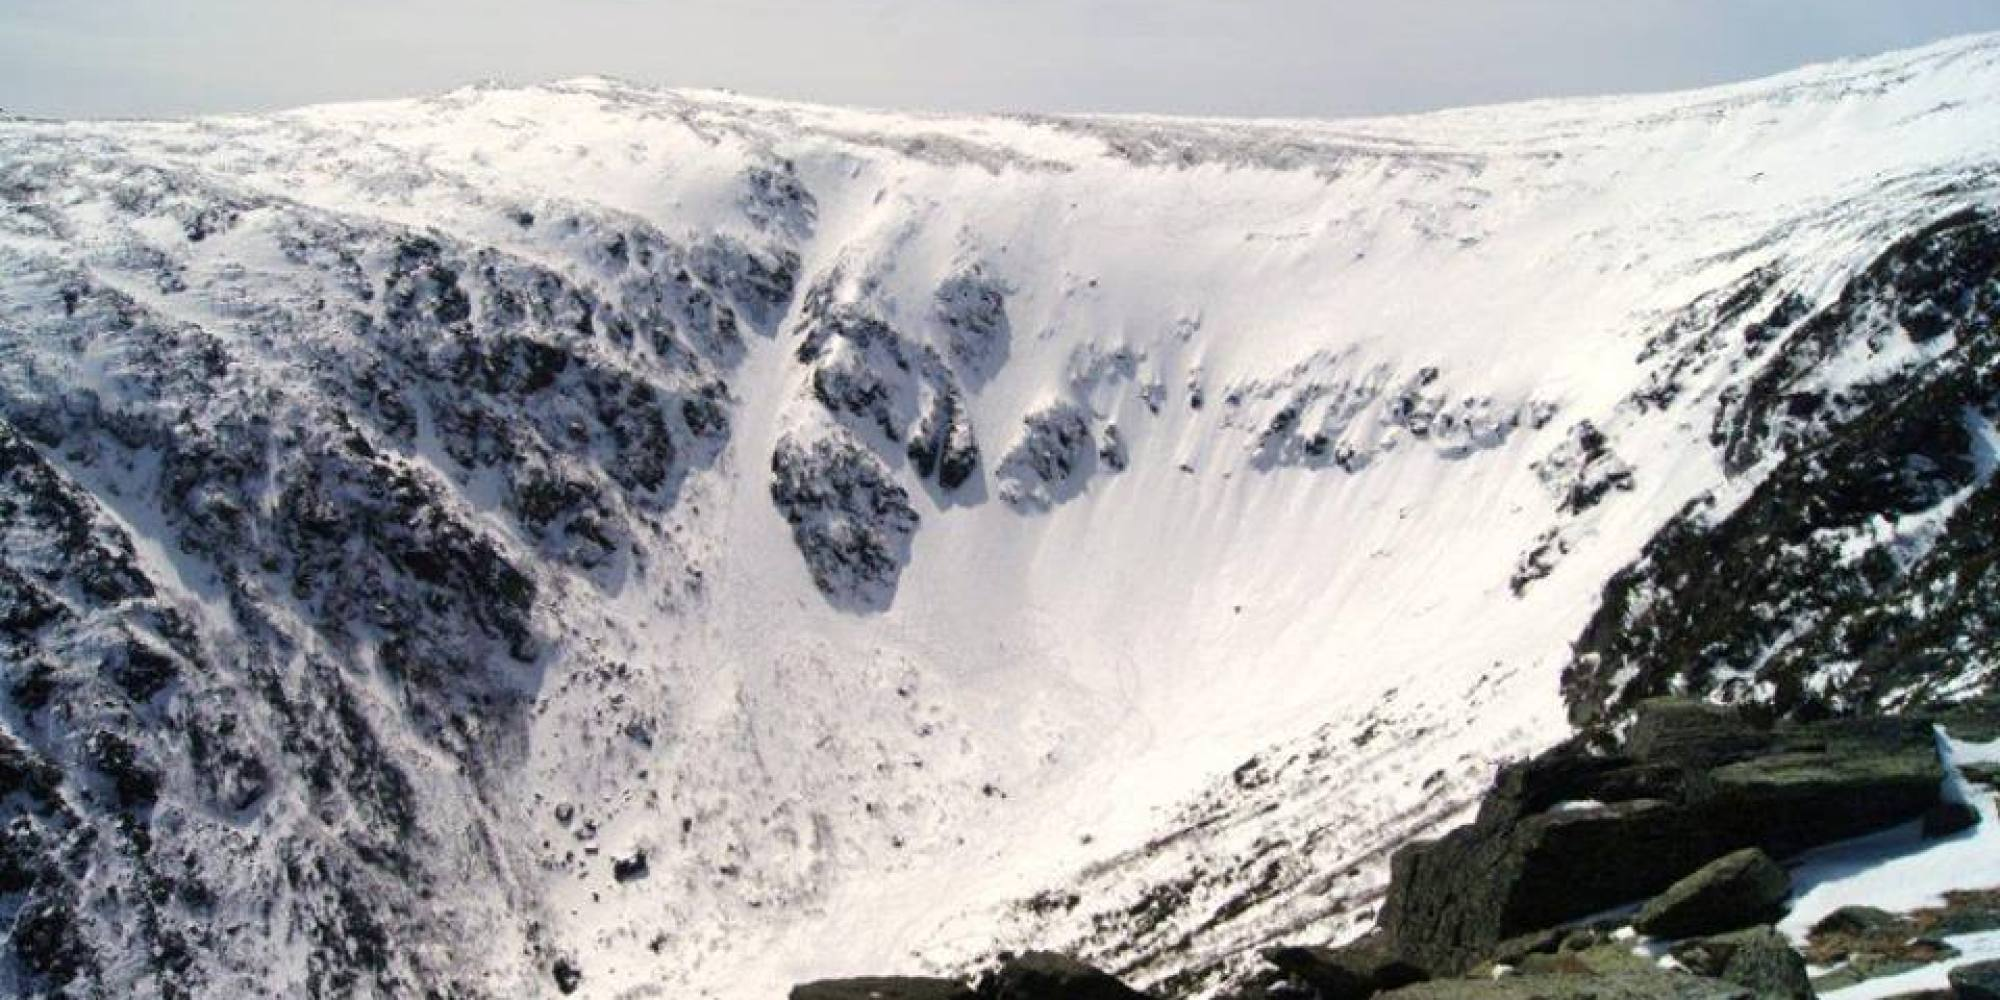 """tuckerman girls For extreme skiers and snowboarders, tuckerman ravine (also known as """"tucks"""") is a mecca you must visit once in your lifetime with no lodge, no terrain parks, or lifts, and the occasional."""